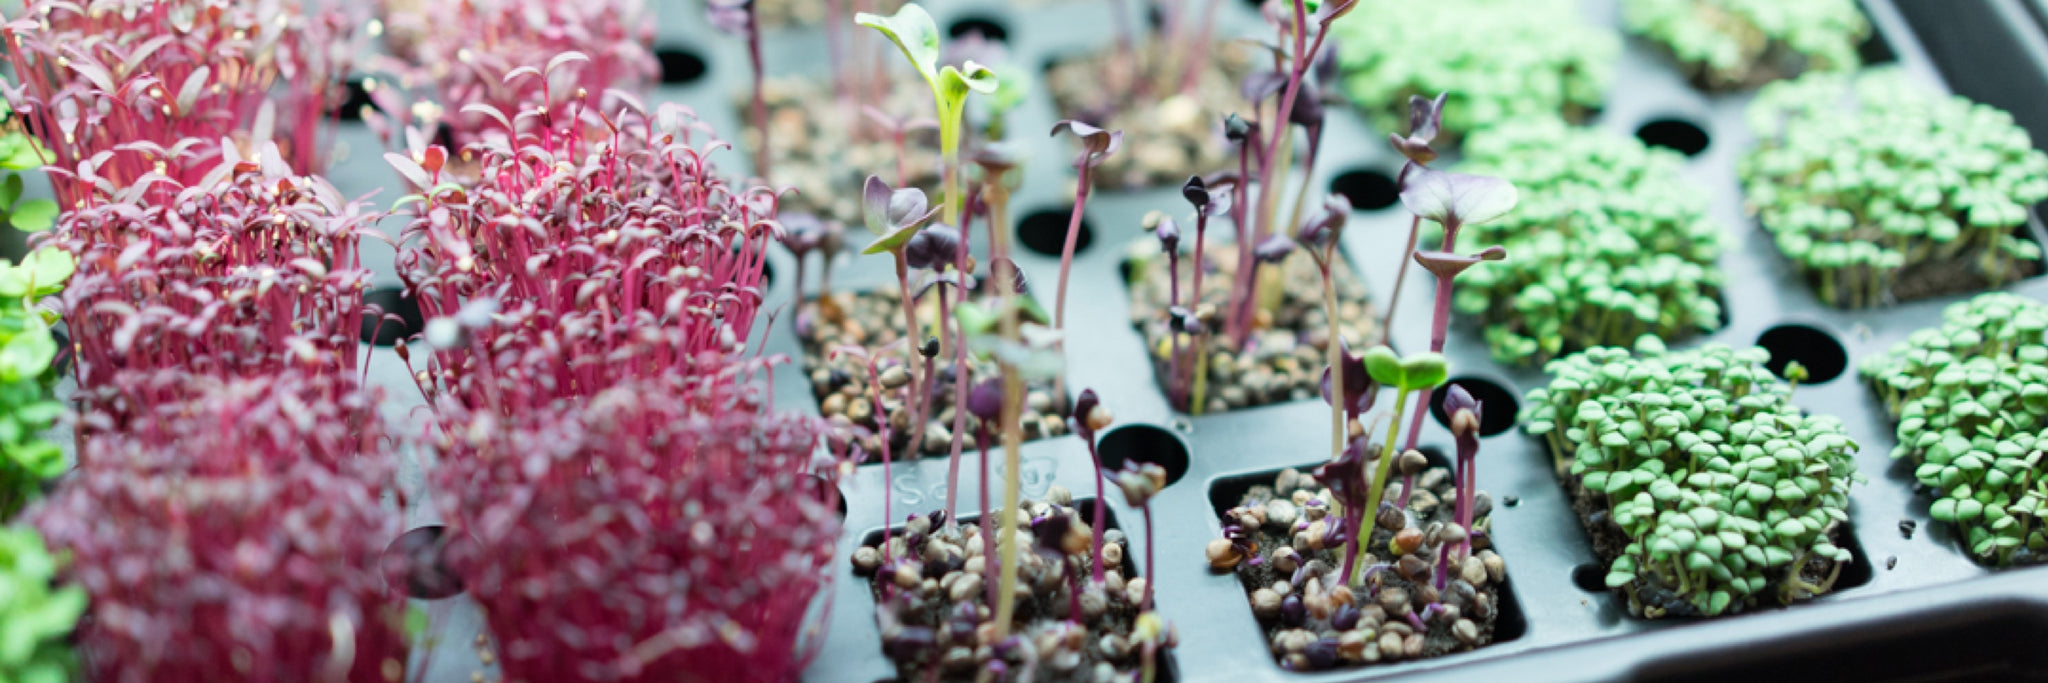 Sprouts vs. Cress vs. Microgreens vs. Baby Greens - What's the Difference?